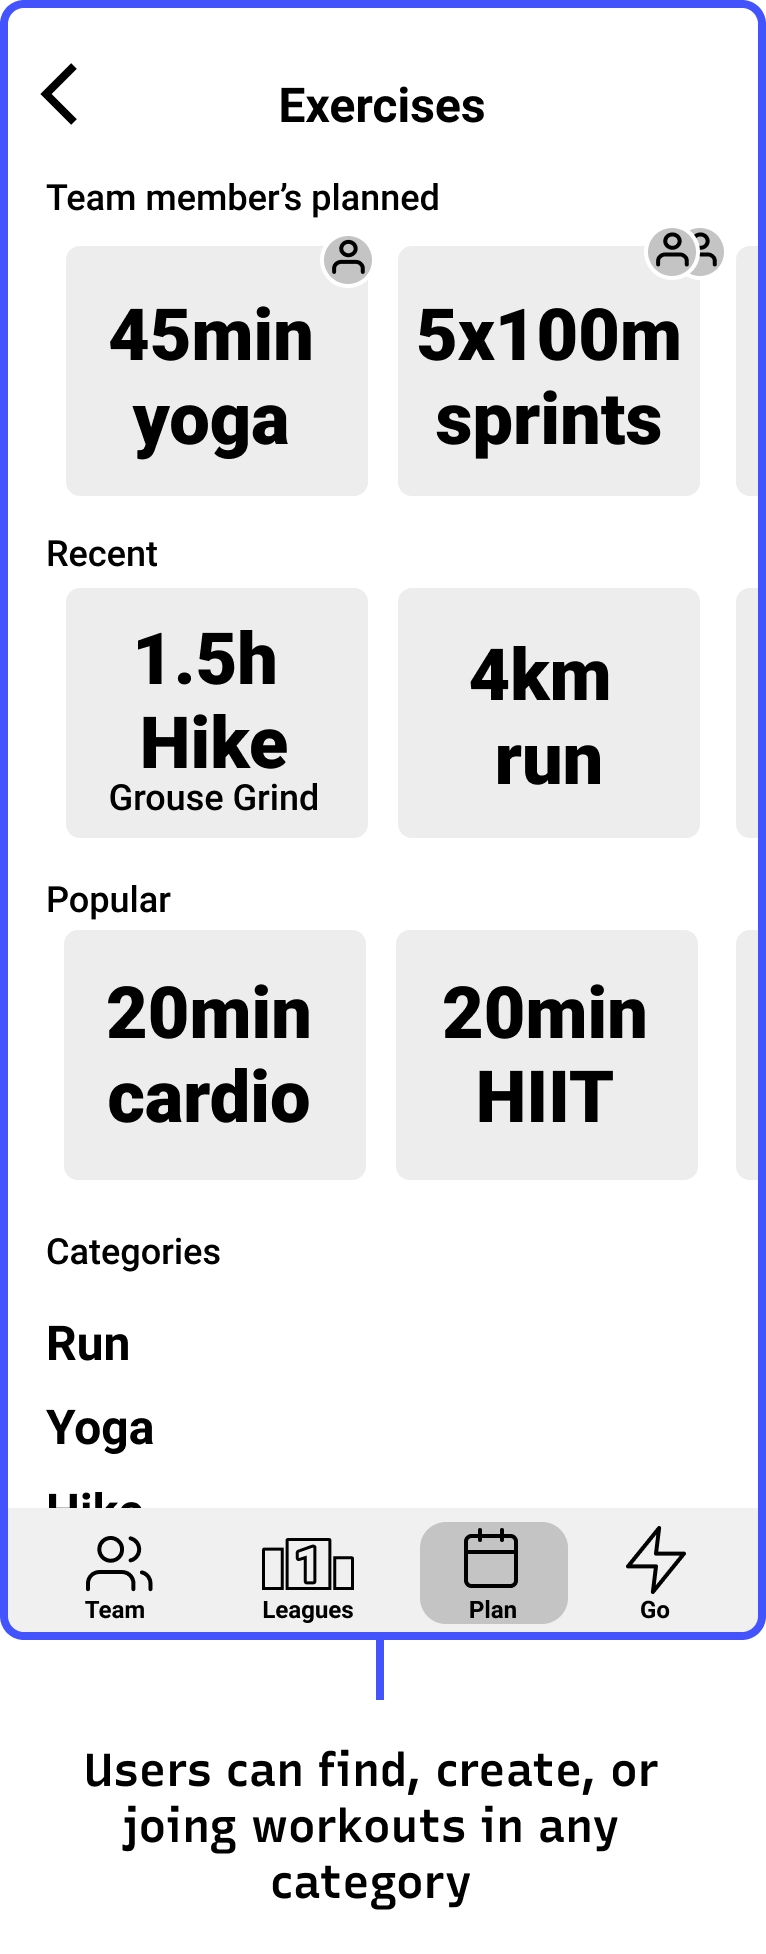 User interface of fitness app showing that users can create and join workouts in any category of exercise